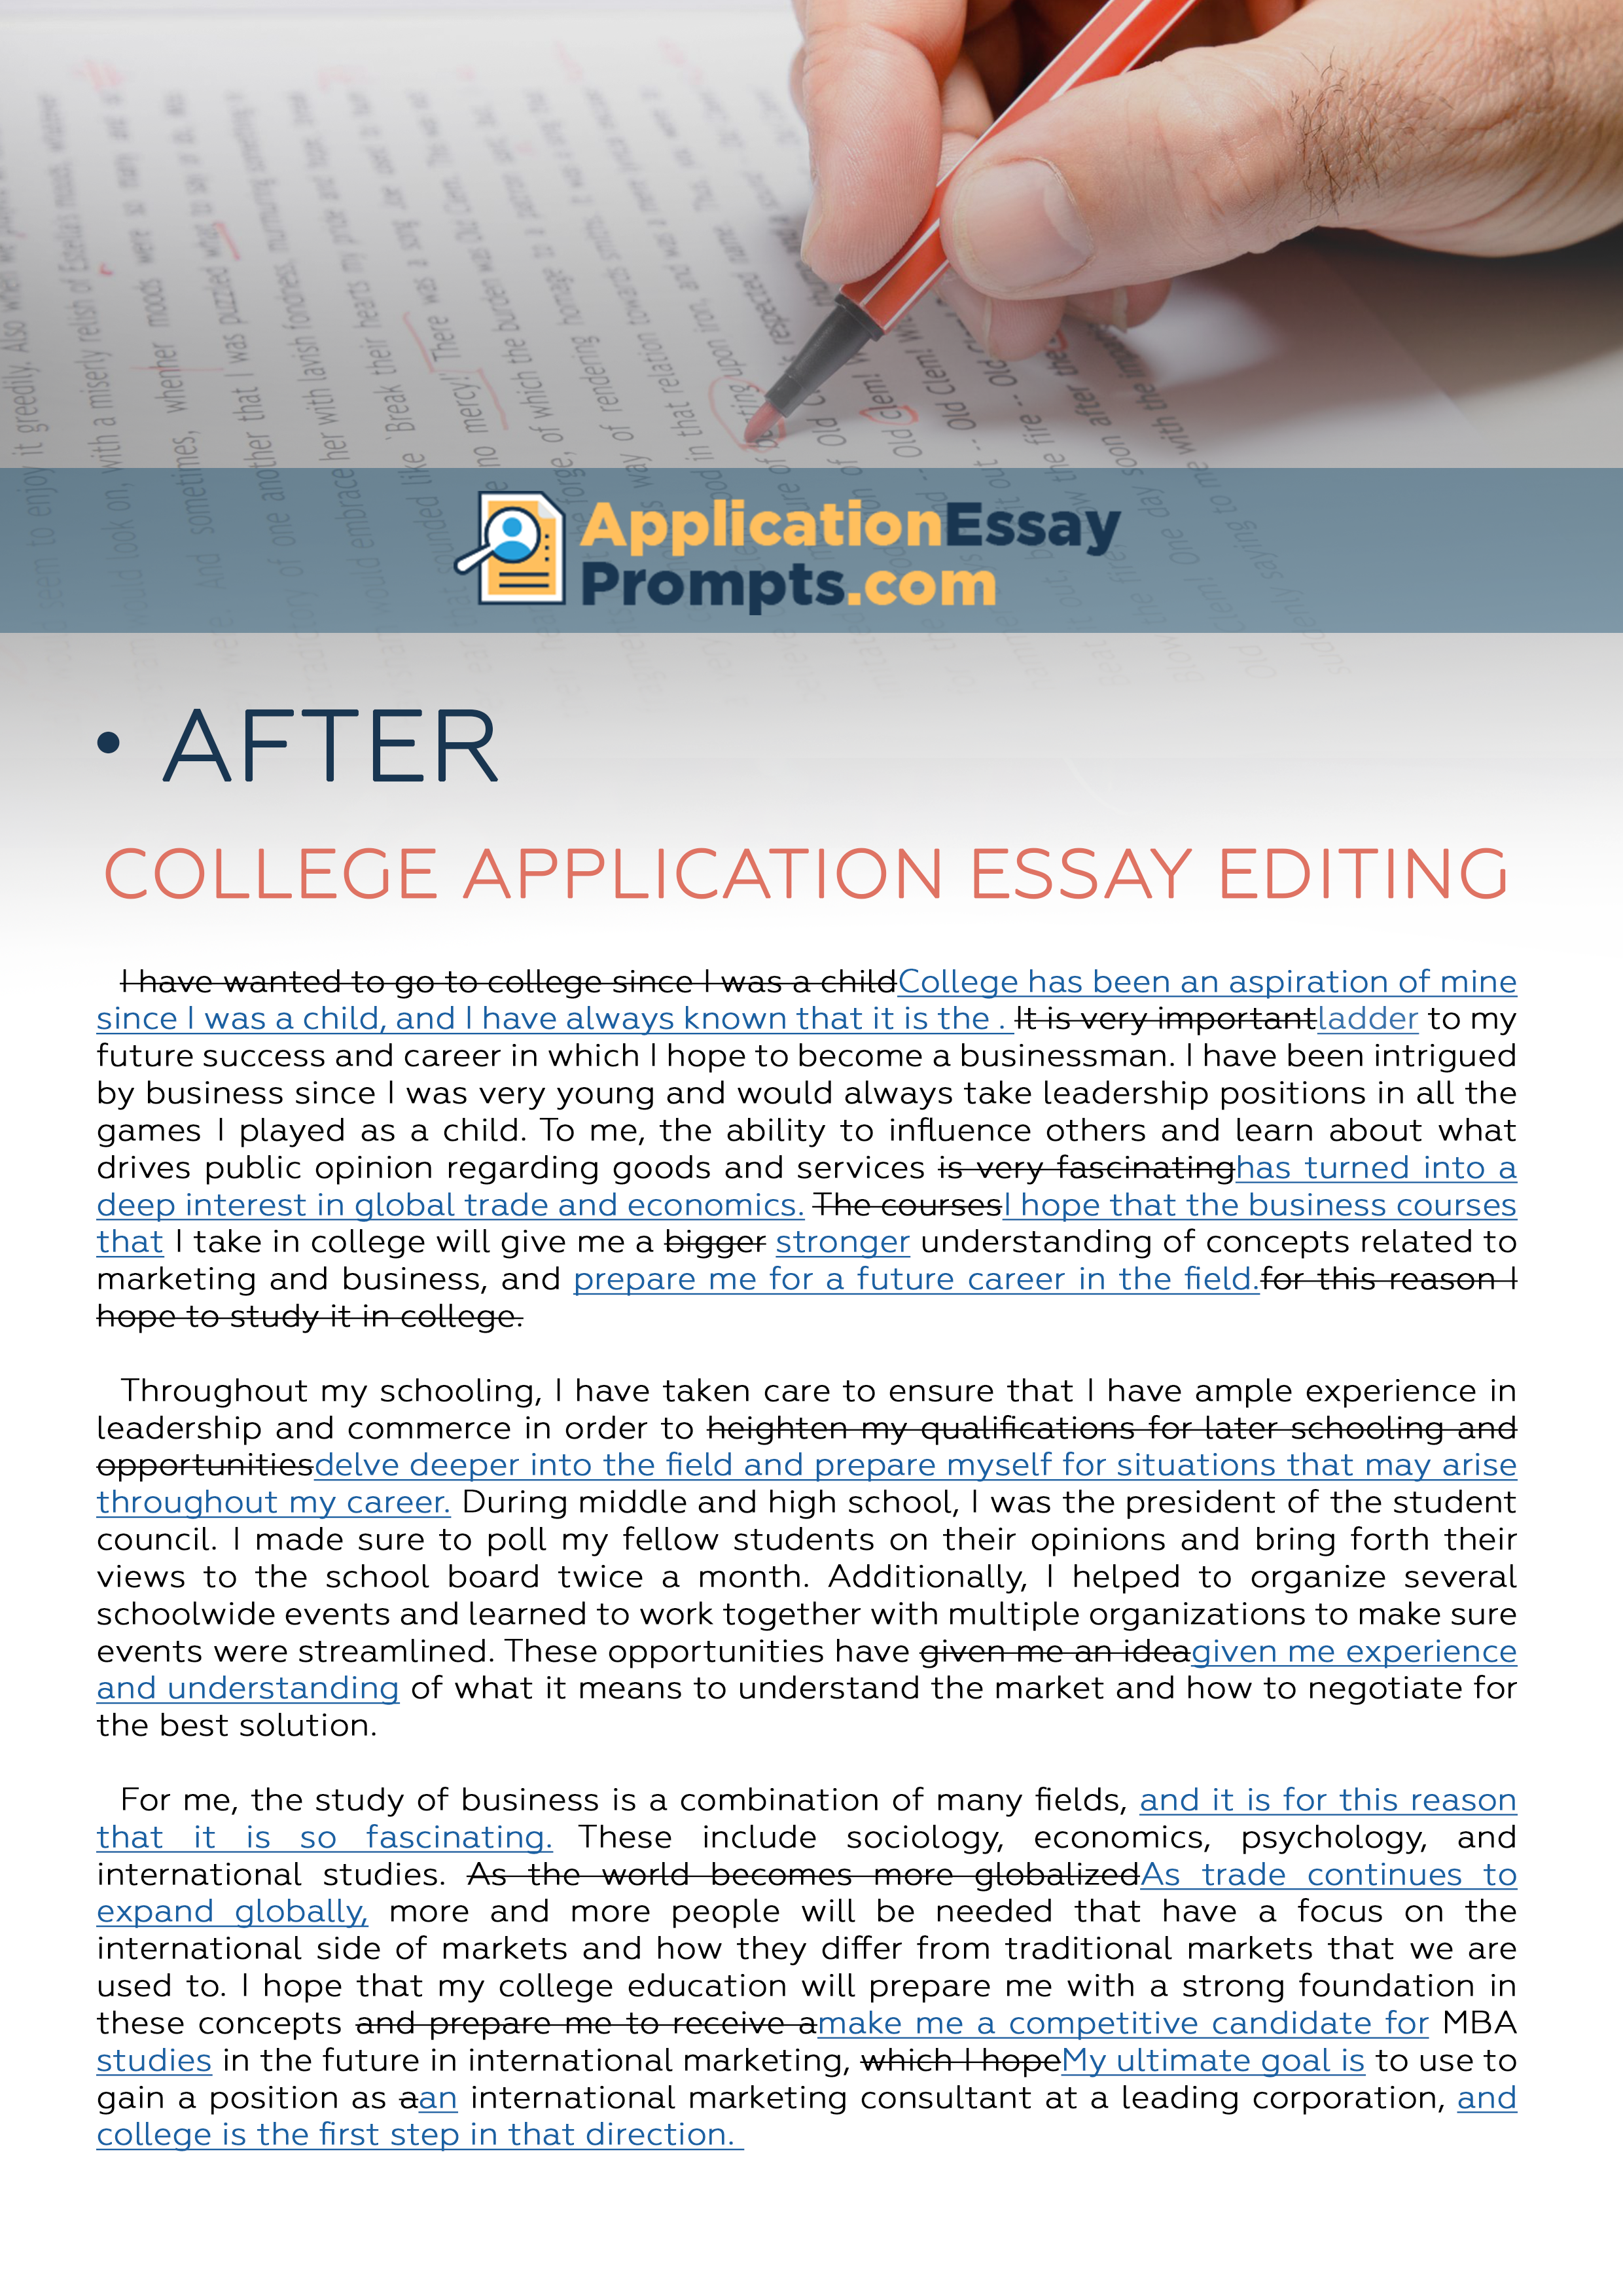 013 Essay Example Editing After College Unusual Service Application Services Free Full